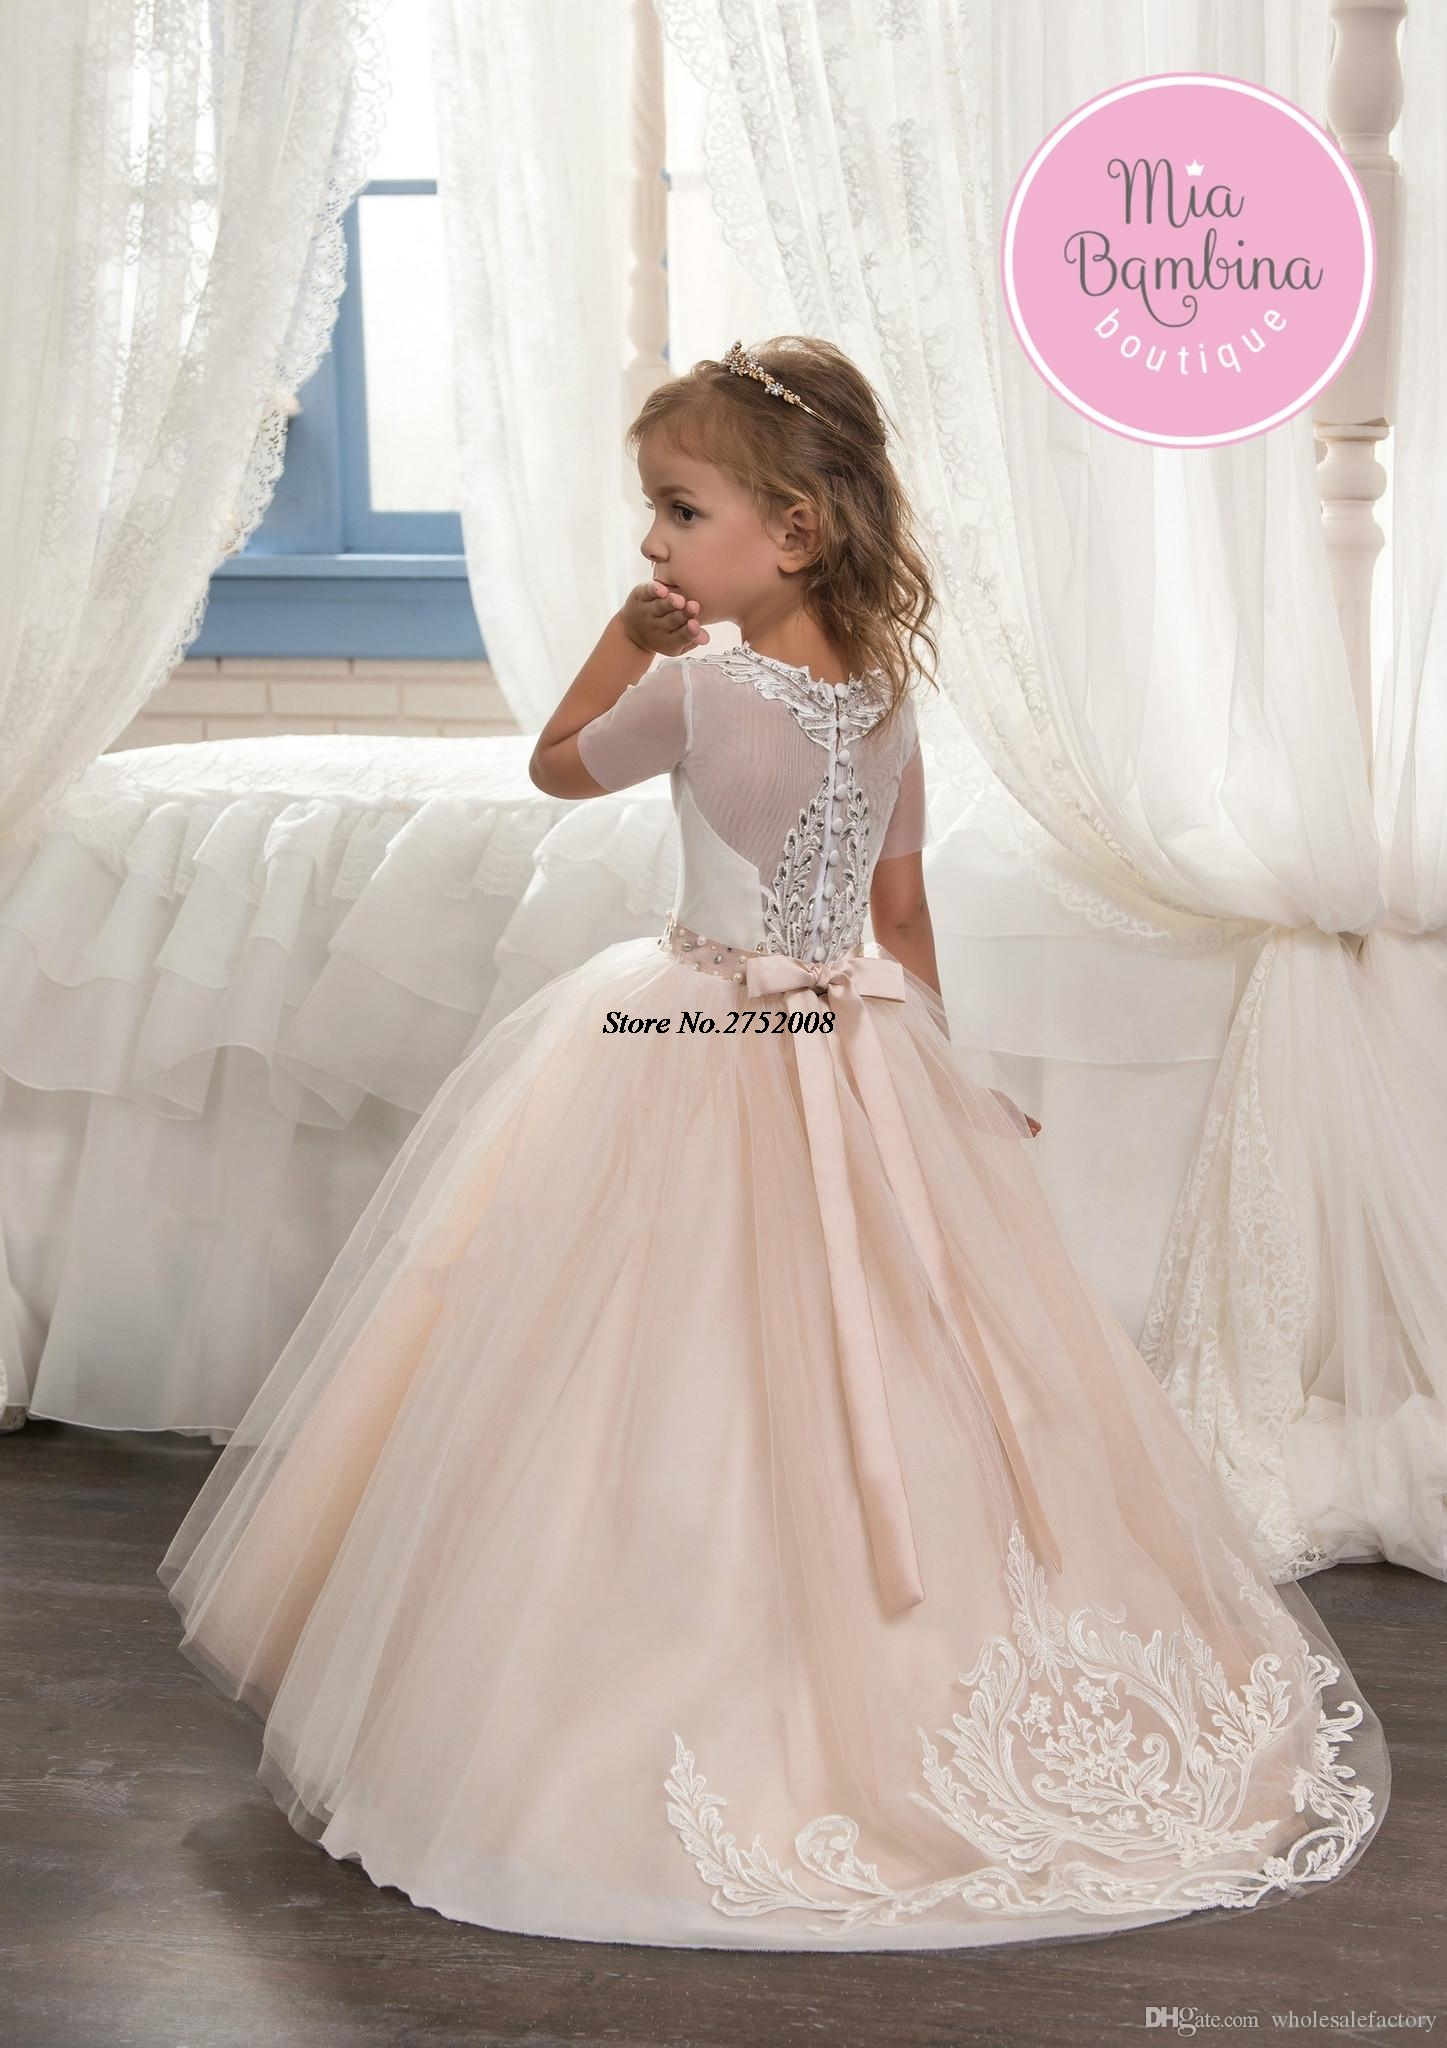 Fancy Tznius Gowns Pictures - Wedding and flowers ispiration - sessa.us